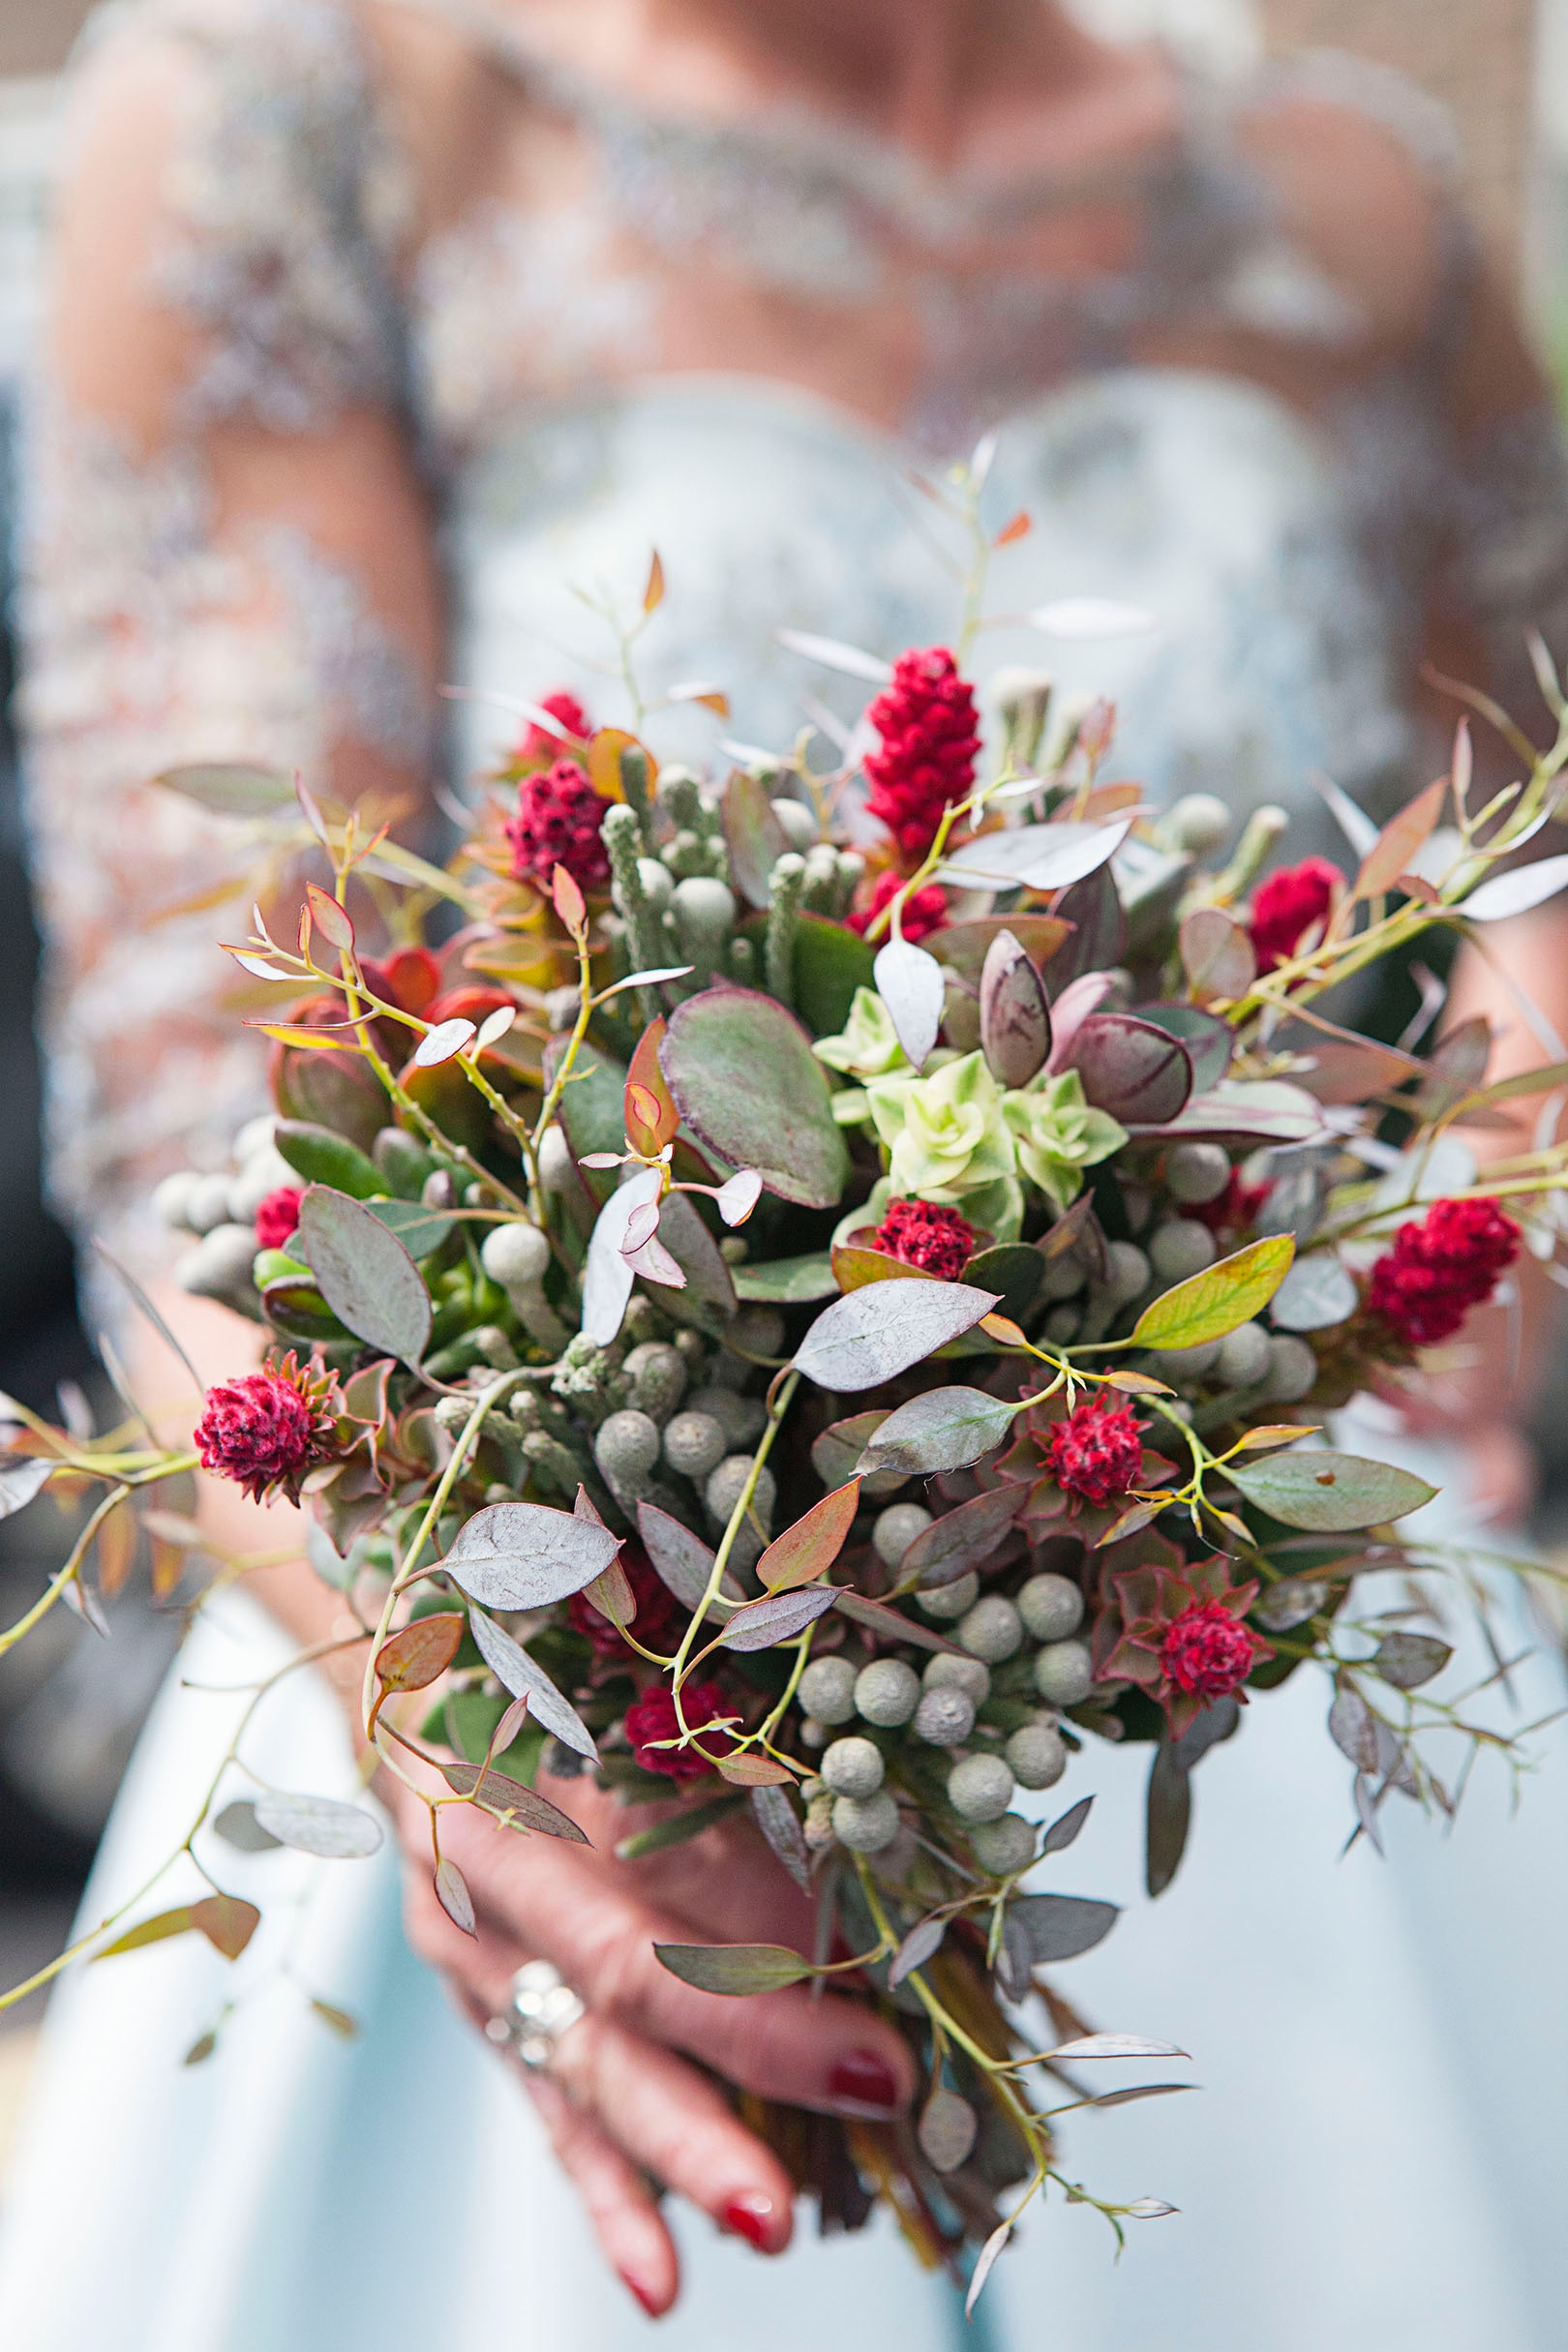 Sarah's bouquet made from succulents, eucalyptus and South African foliage